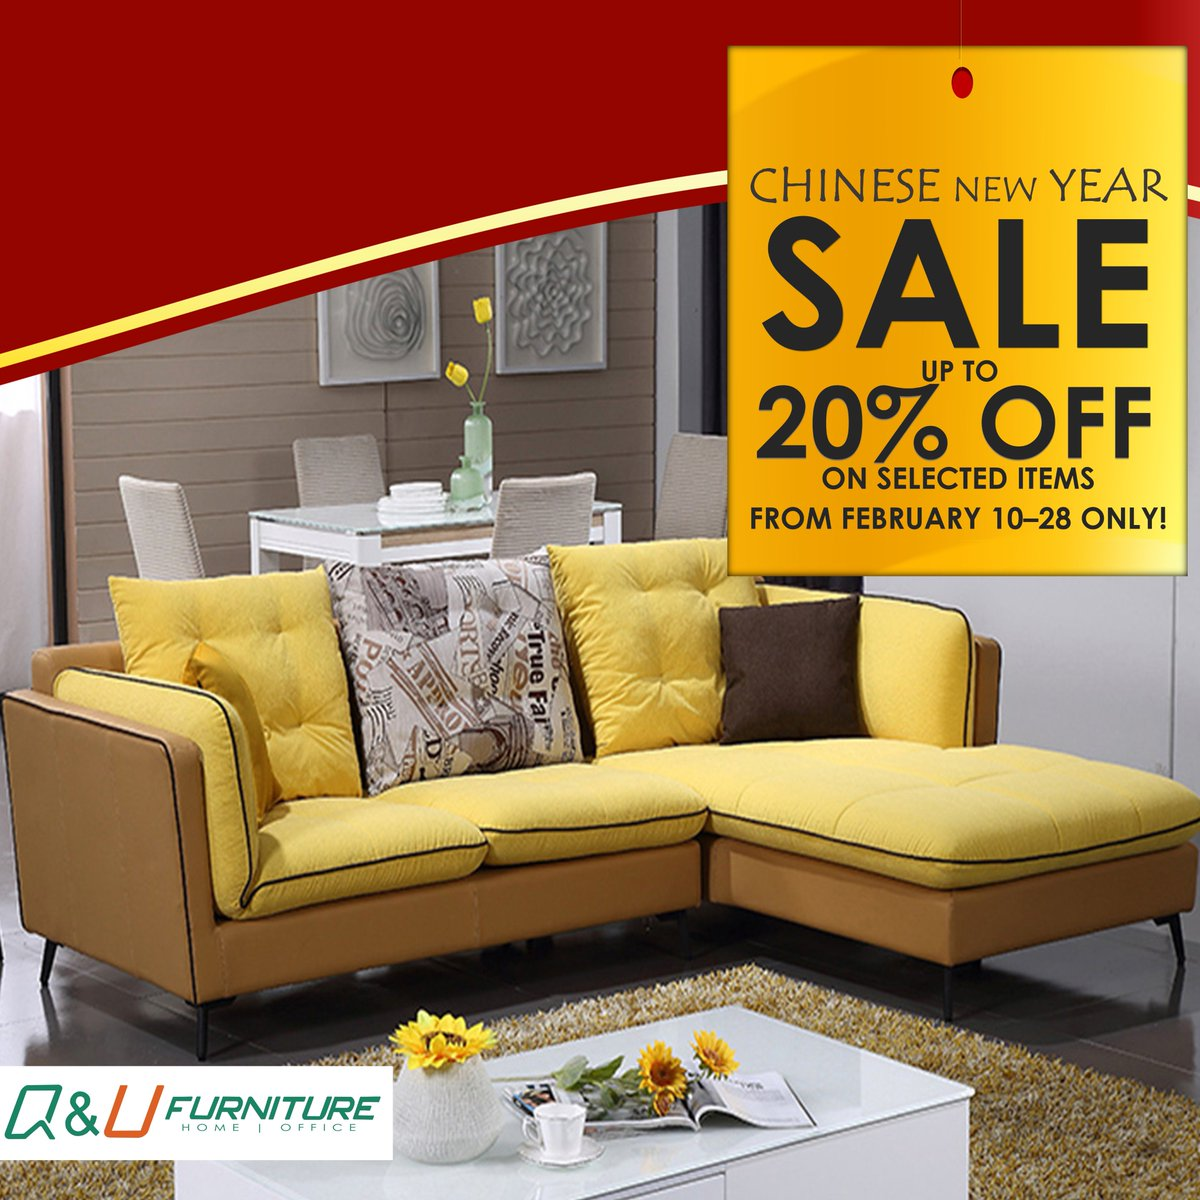 home office sofa. OFF In Selected Home And Office Furniture For Our CHINESE NEW YEAR SALE From FEB 10 - 28 ONLY! #sale #furniture #home #office #sofa #fabric #livingroom Sofa